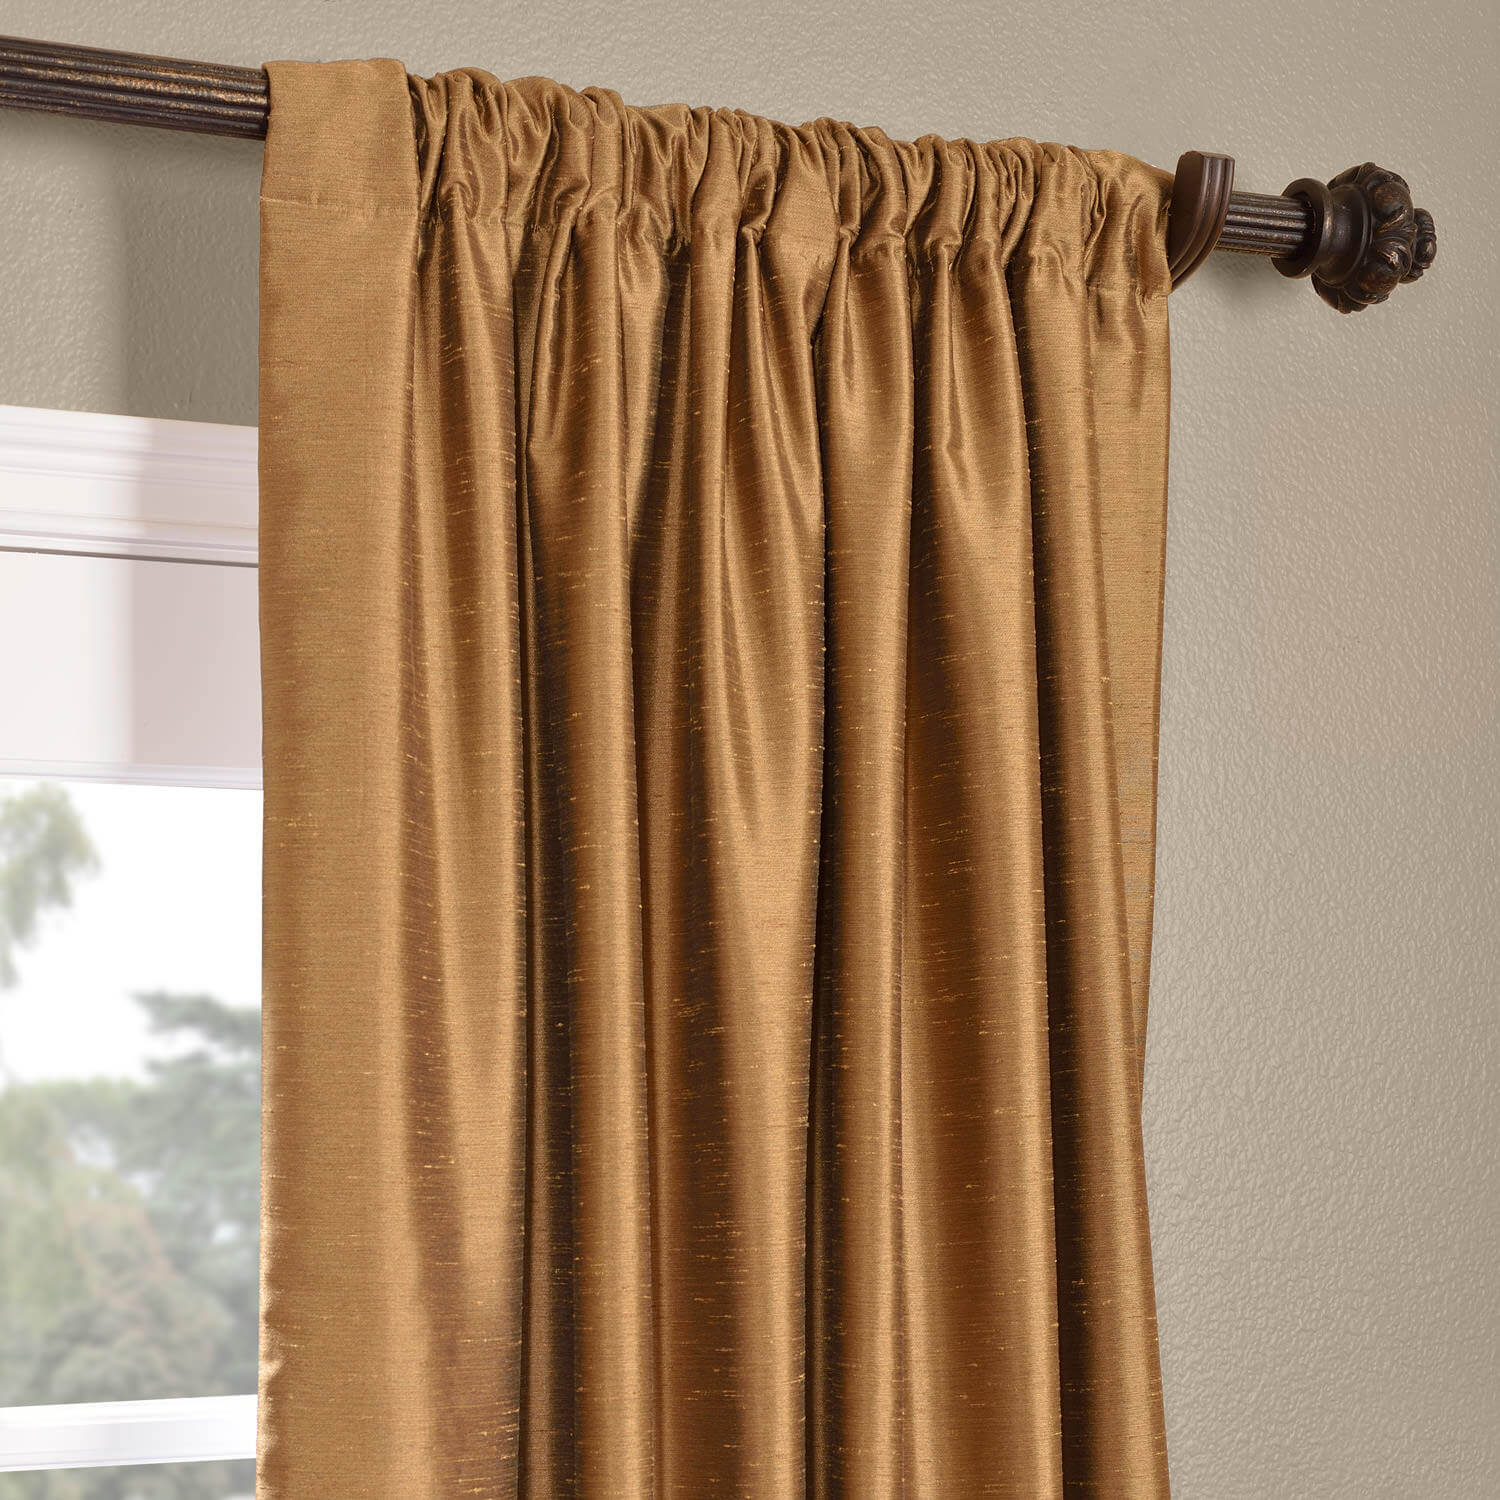 dining chair covers velvet high chairs on sale buy empire gold yarn dyed faux dupioni silk curtains